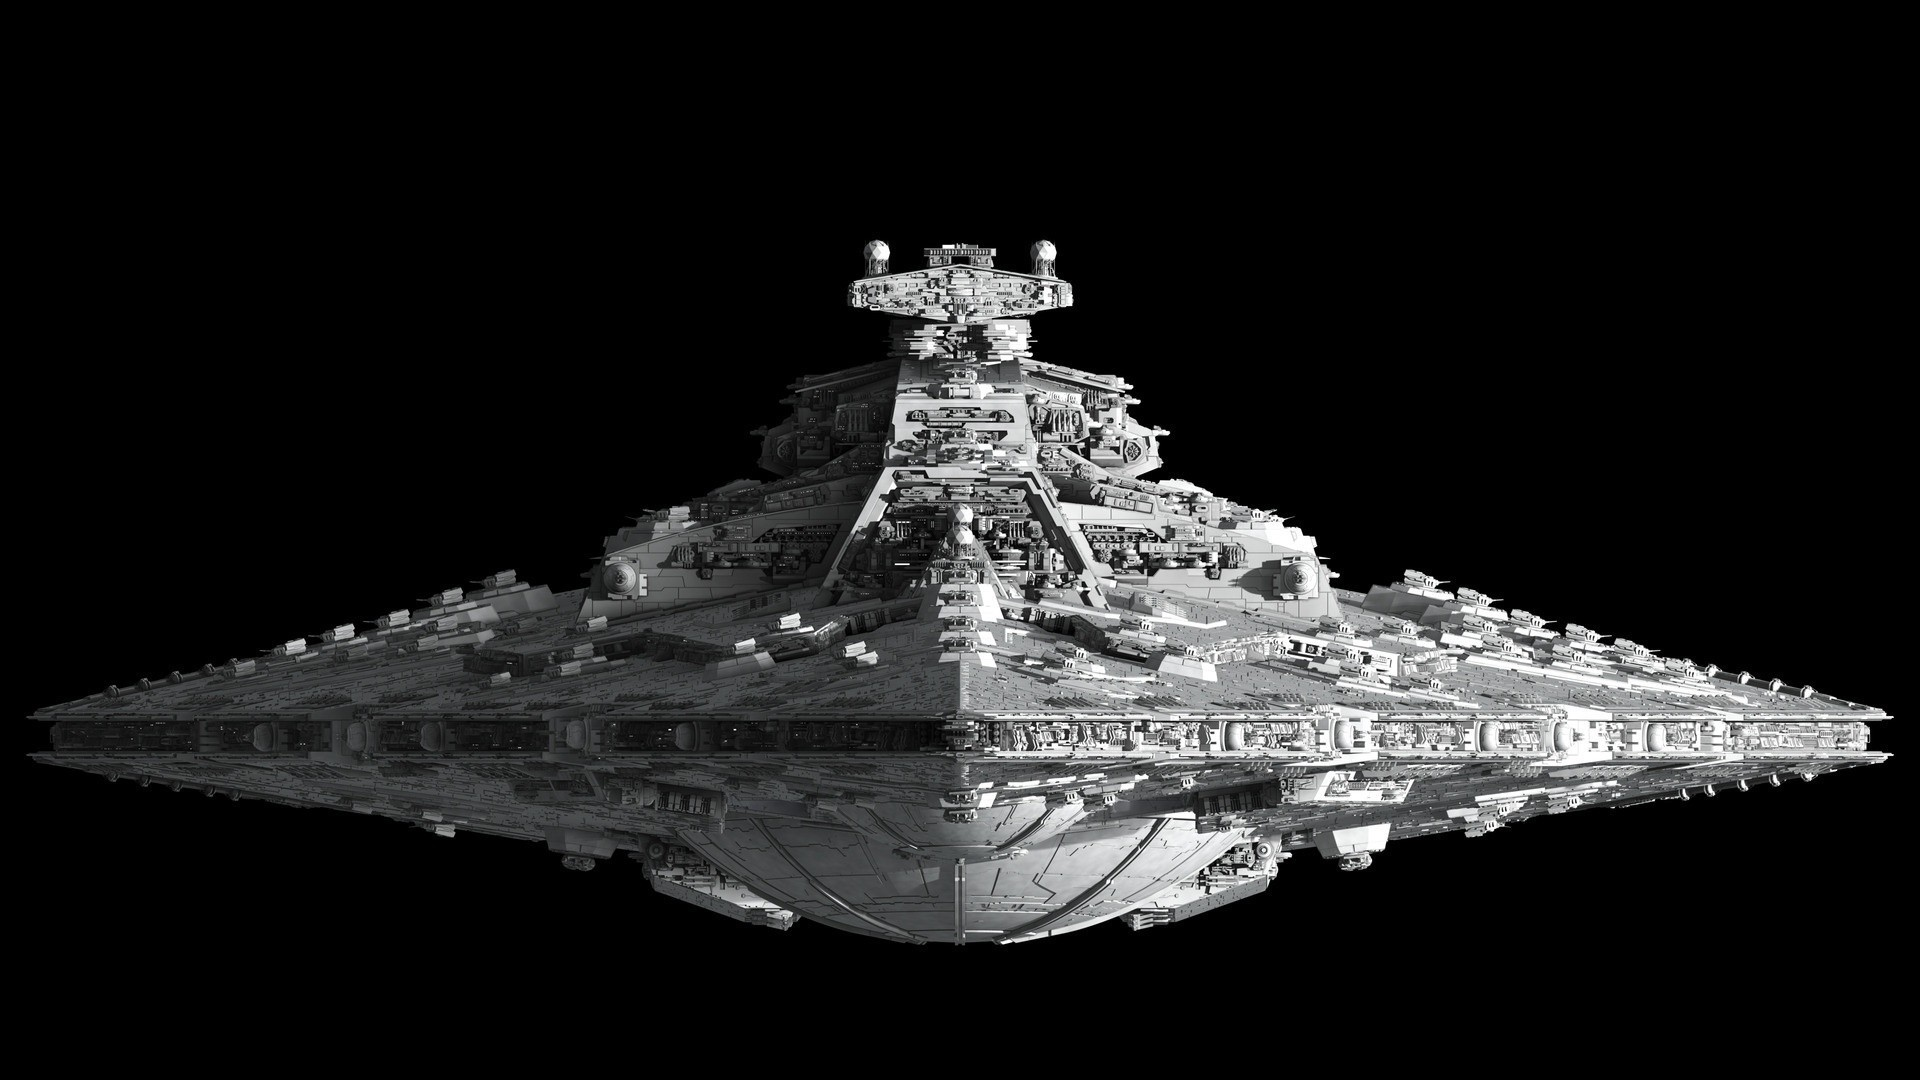 128 Star Destroyer Wallpaper Hd